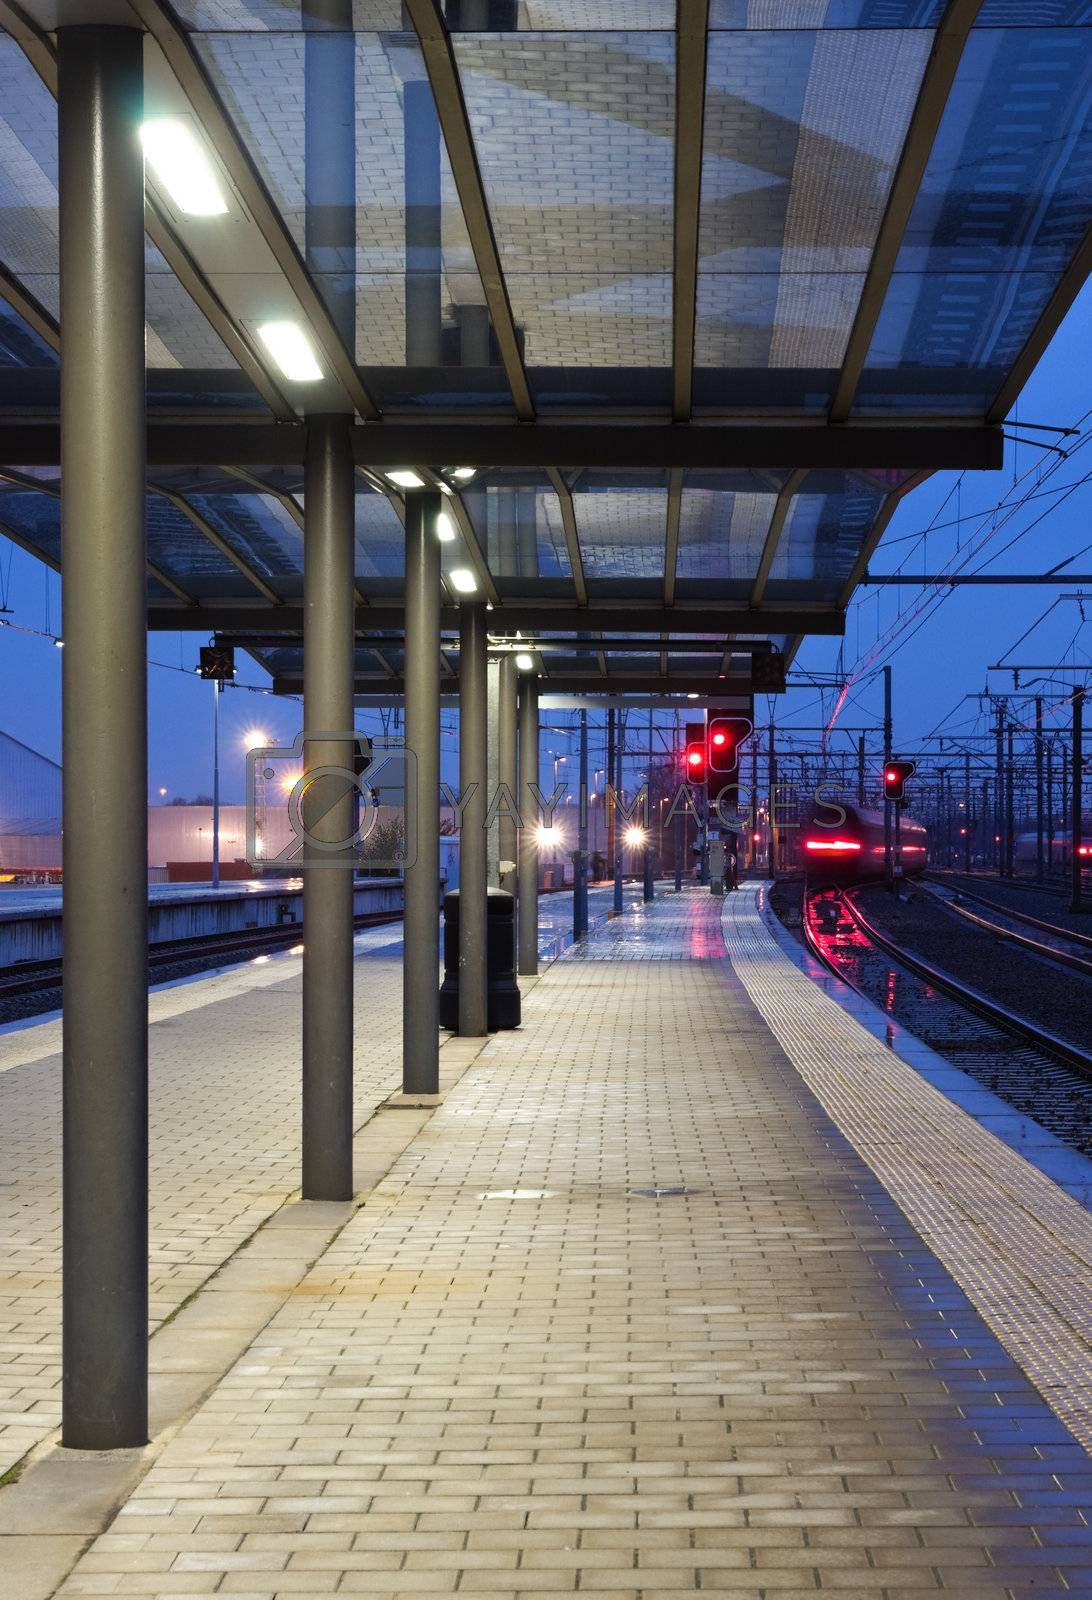 Train leaving the station  by MikLav